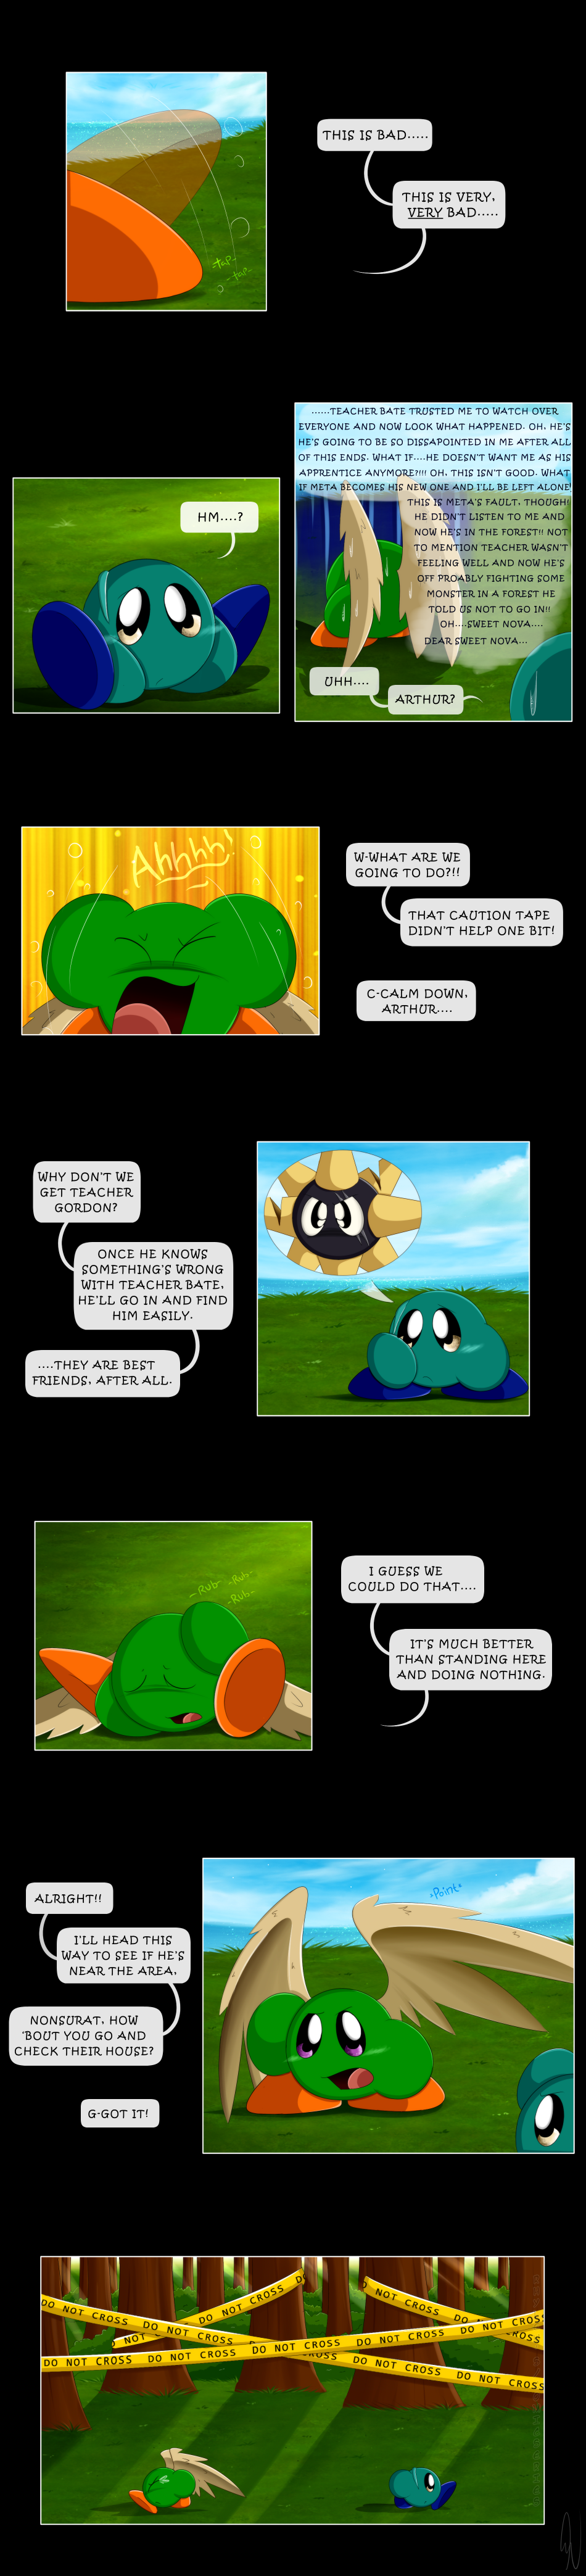 Meta Knight And Kirby Comics One Million Voices Pg....